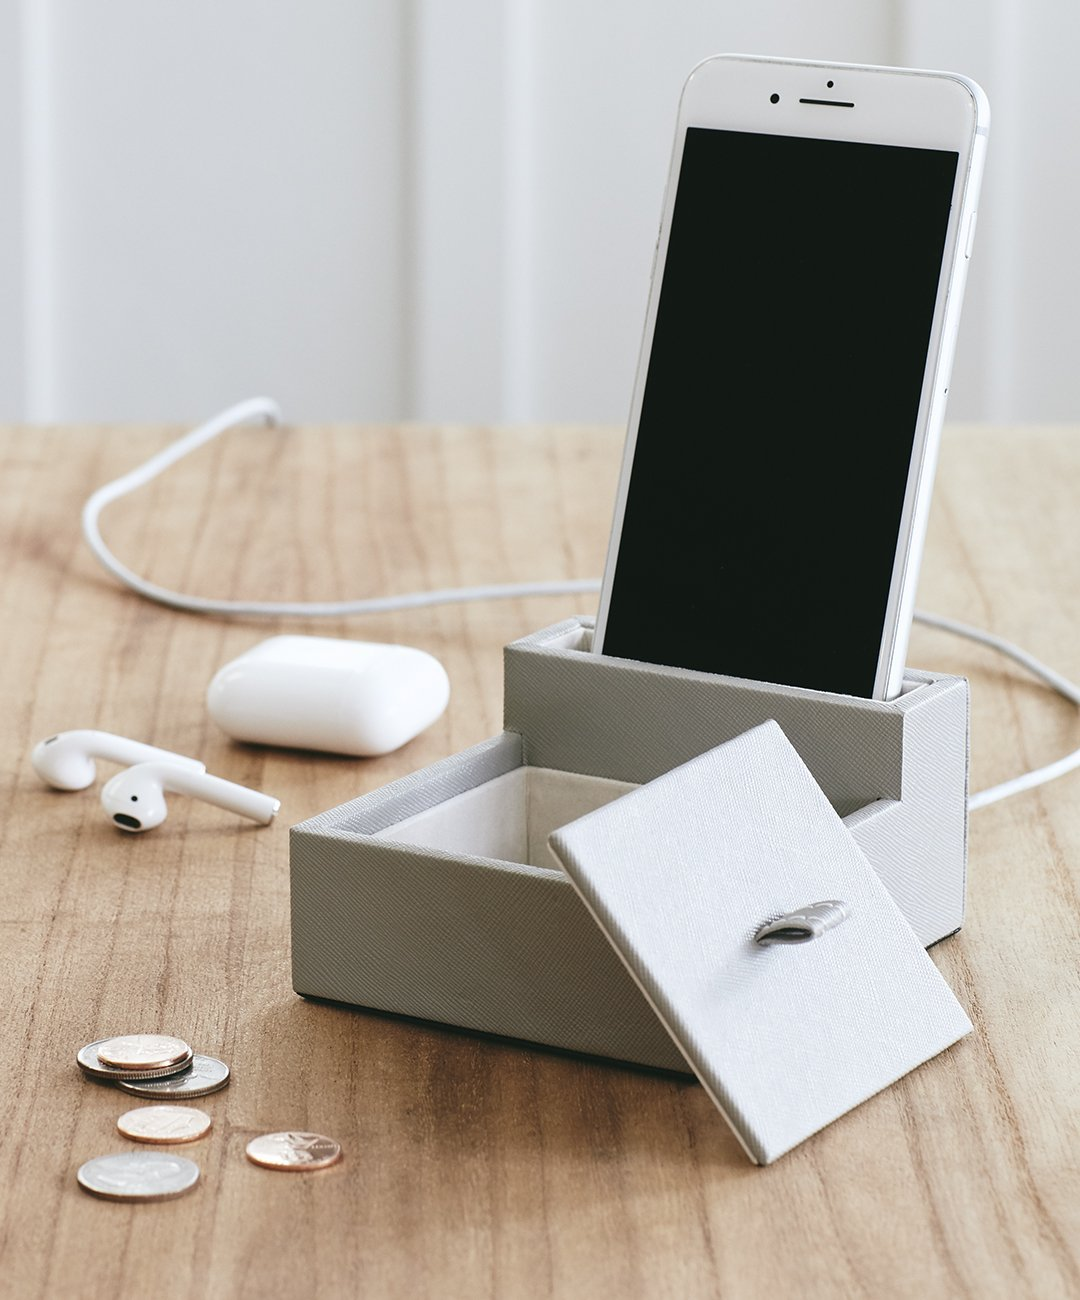 Boon Supply Vegan Leather Phone Stand